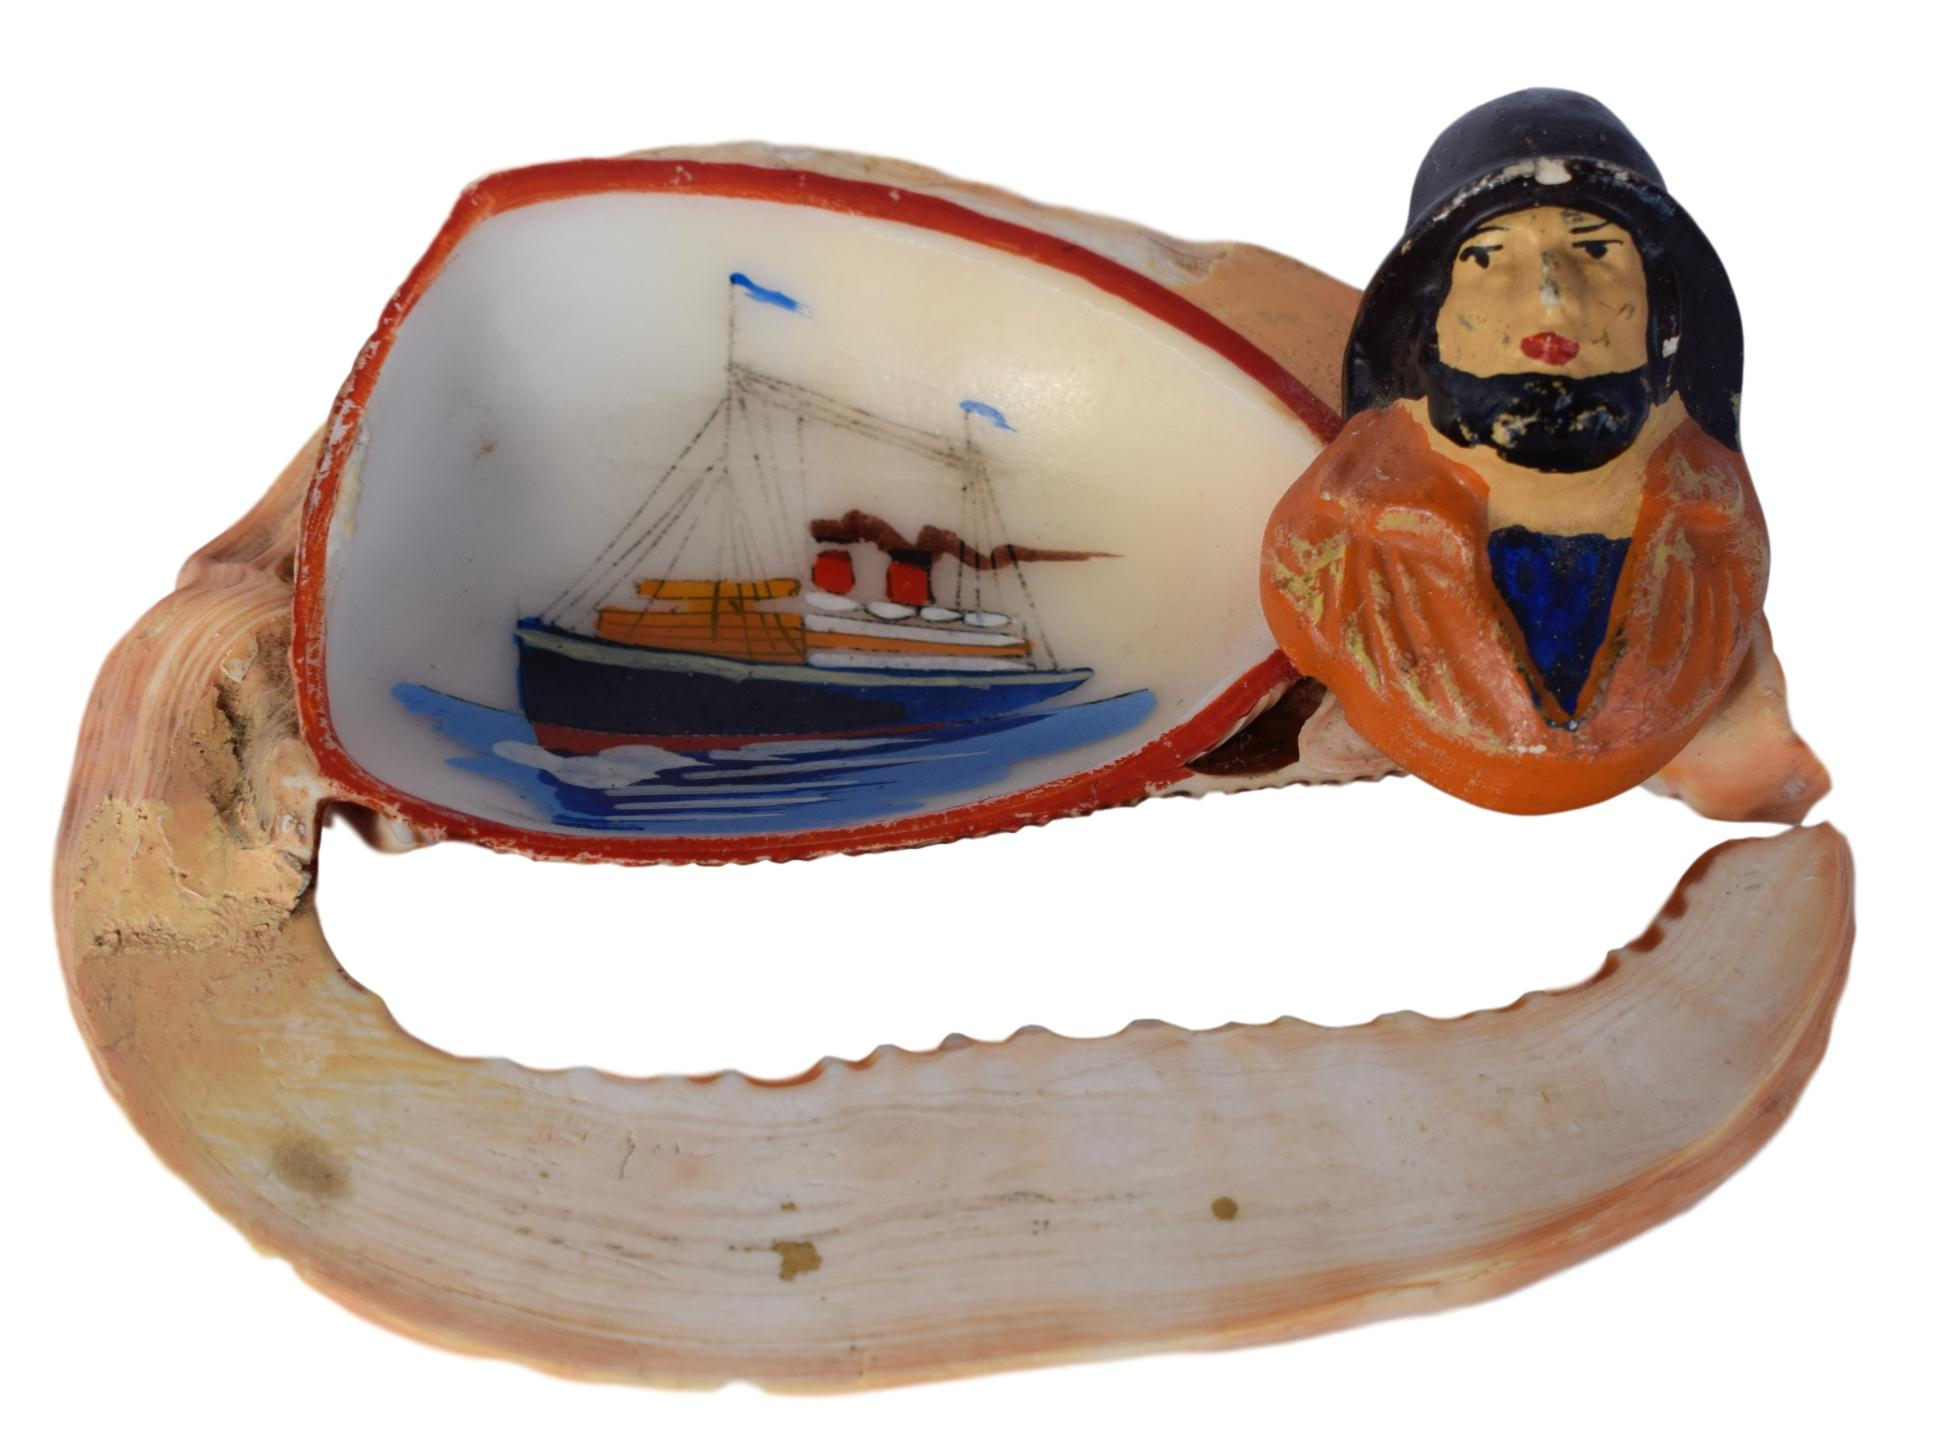 French Vintage Hand Painted Seashell Trinket Bowl - Hand Made French Boat Beach Souvenir - Sailor Portrait Normandy Holidays Souvenir 1920